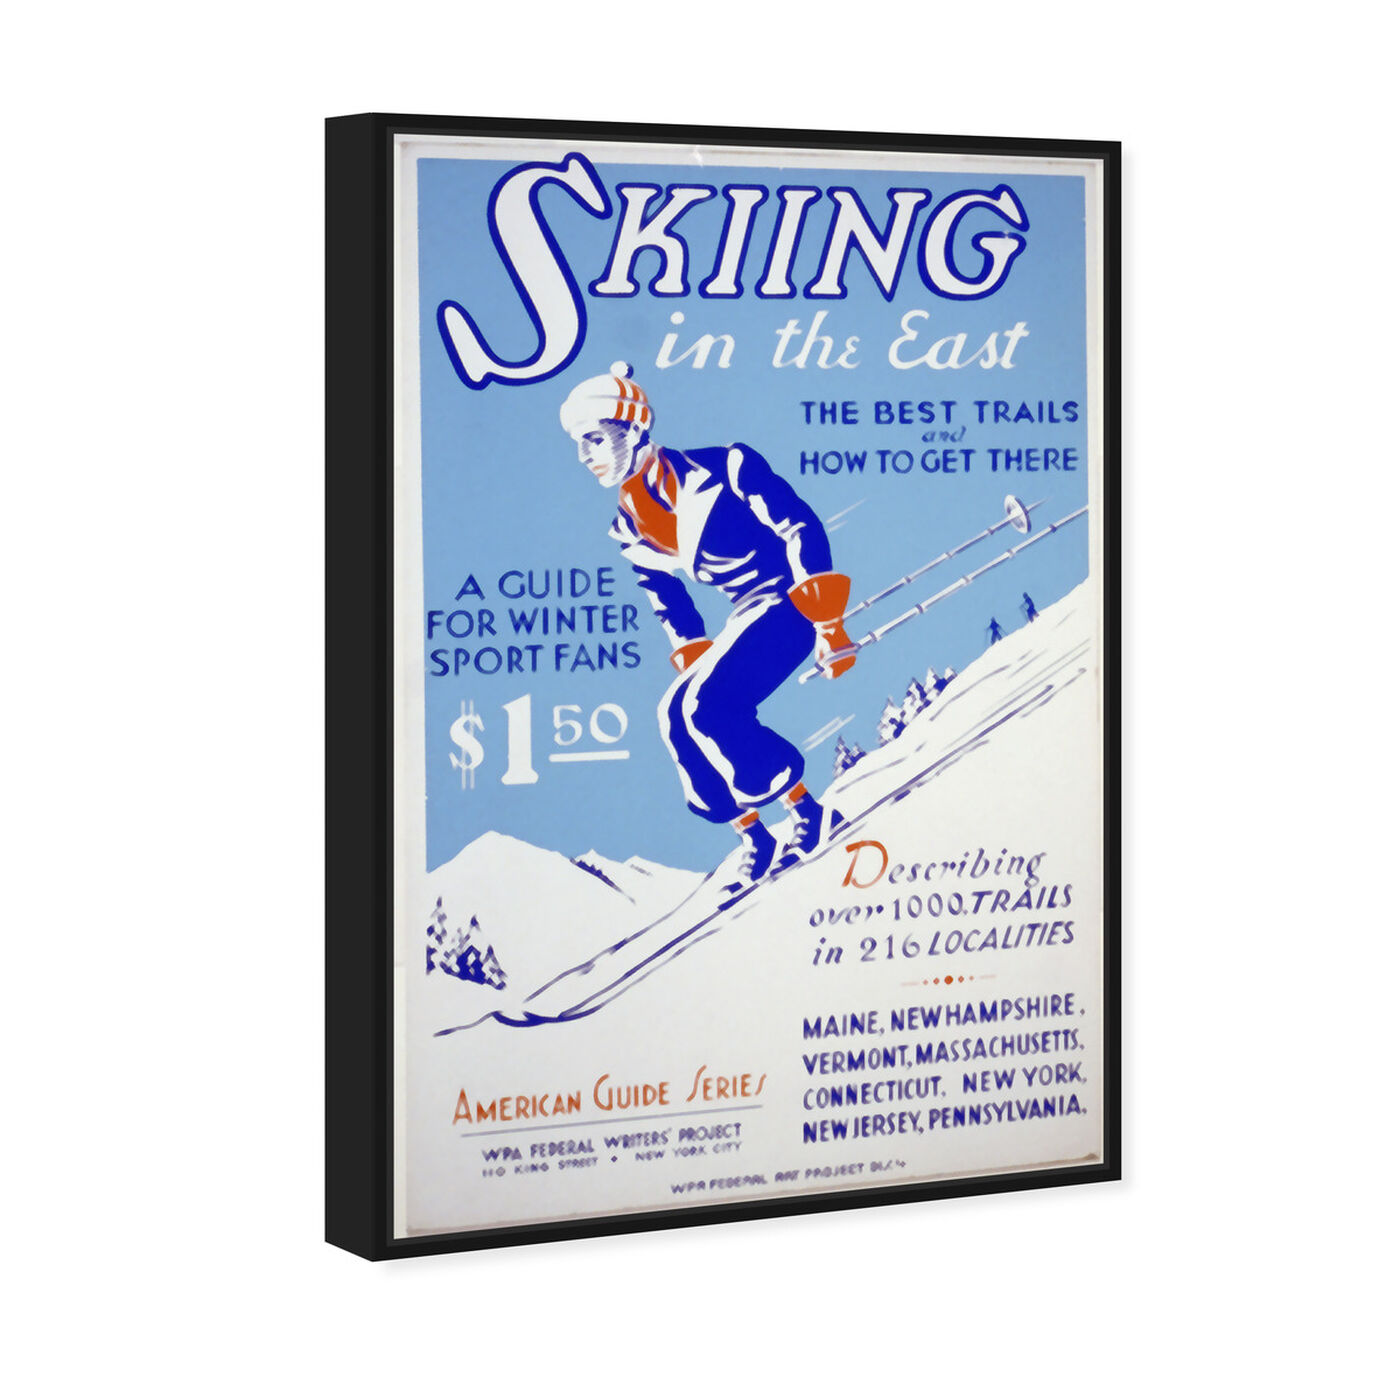 Angled view of Skiing in the East featuring advertising and posters art.